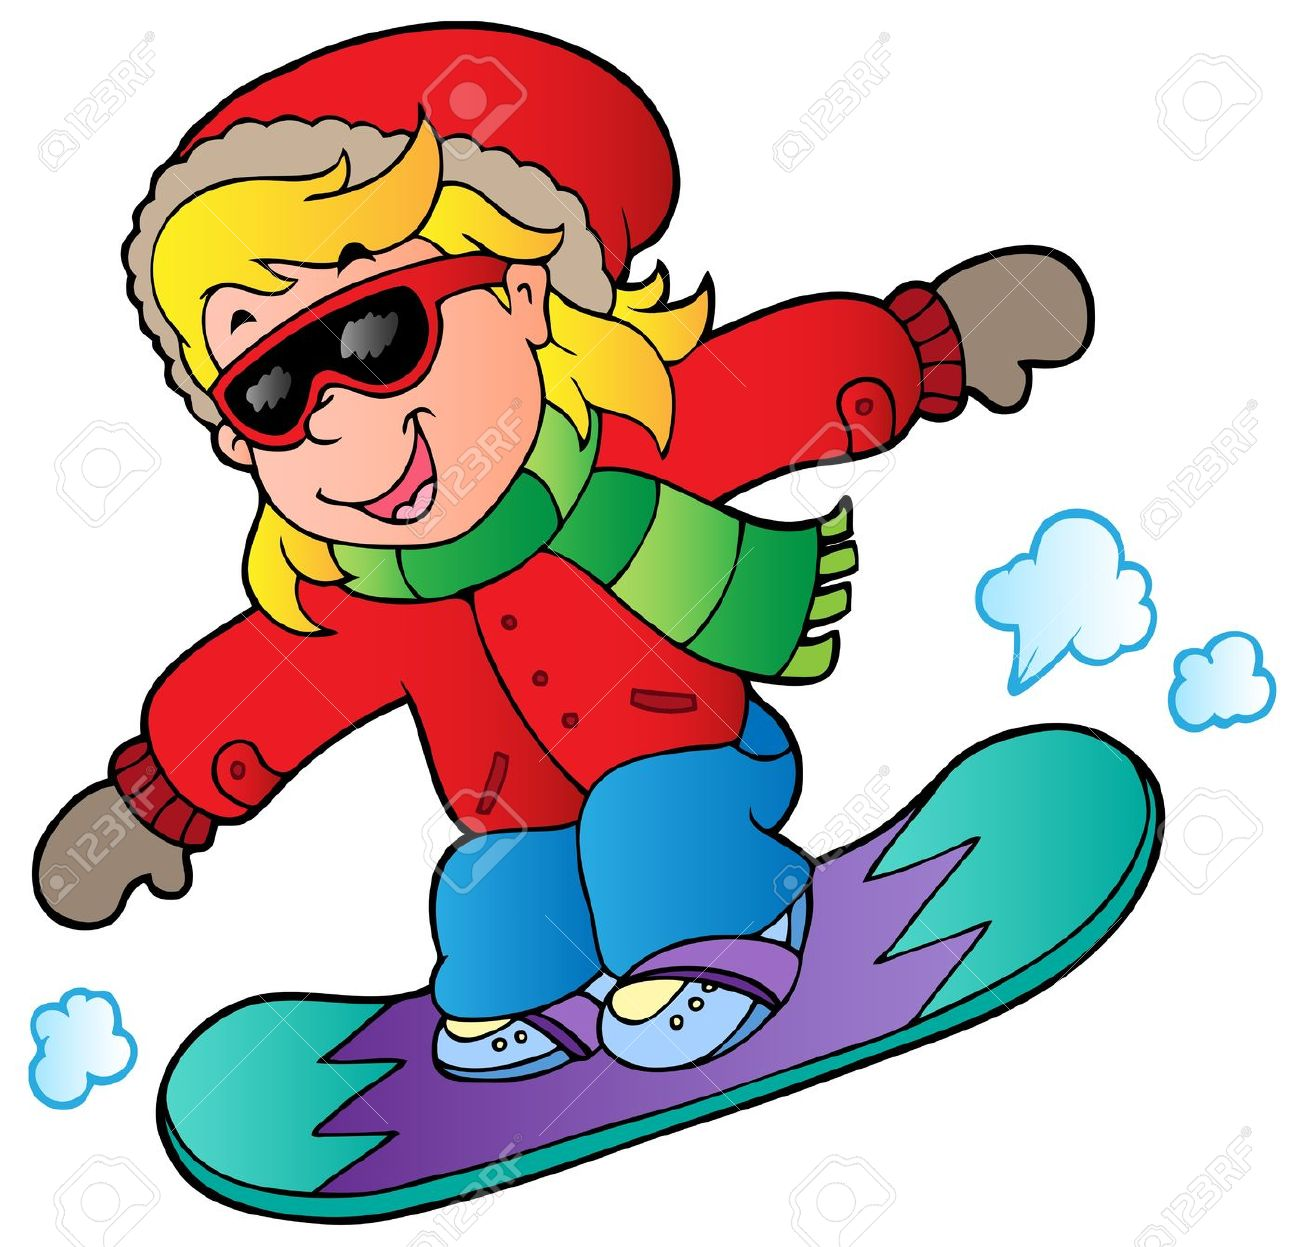 winter-clipart-11505290-Cartoon-girl-on-snowboard-illustrati